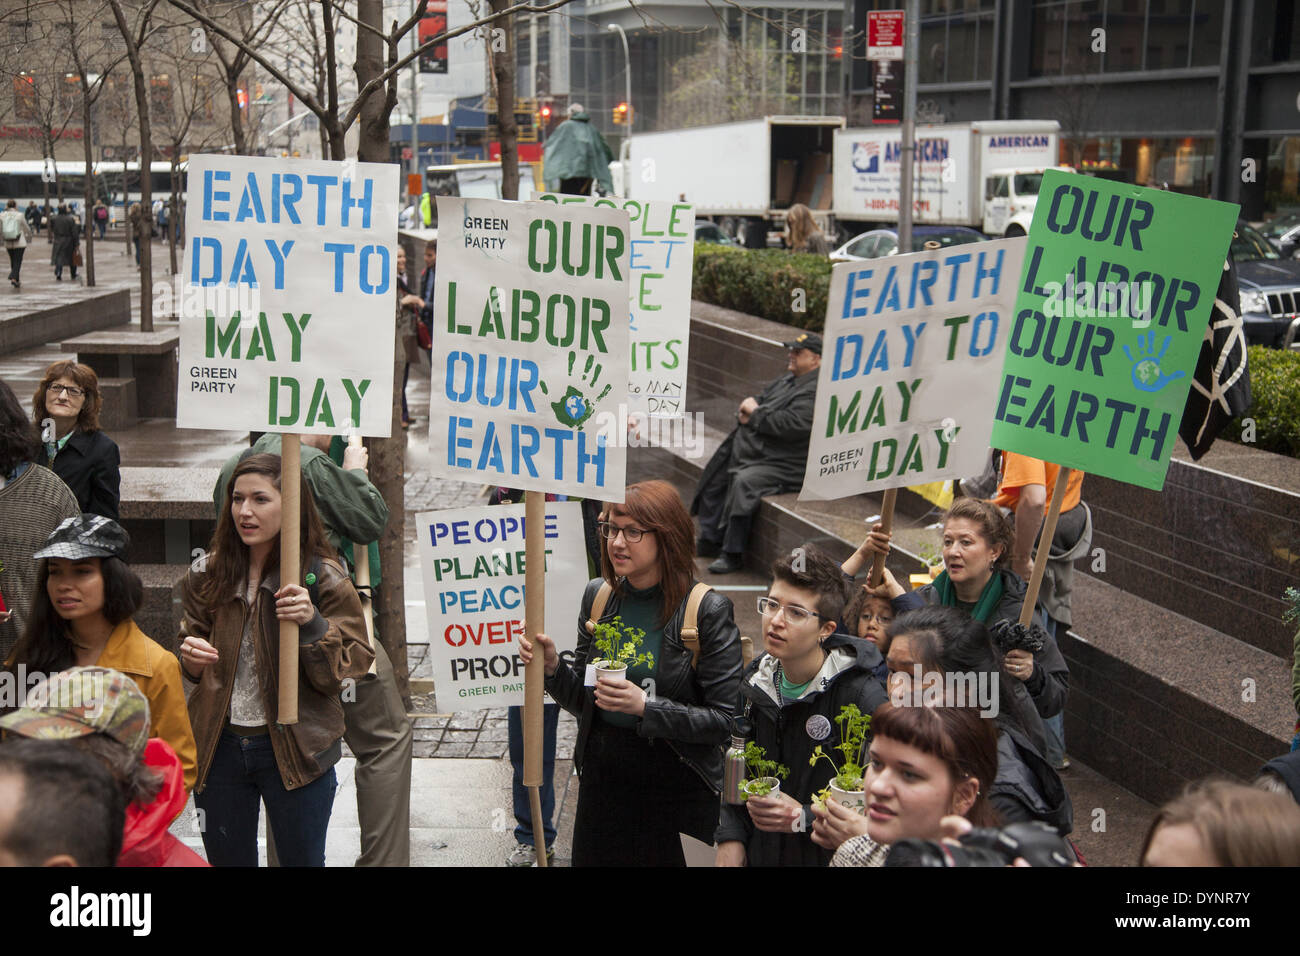 New York, NY, USA . 22nd Apr, 2014. Environmental activists rally on Earth Day at Zuccotti Park, then march to Wall - Stock Image